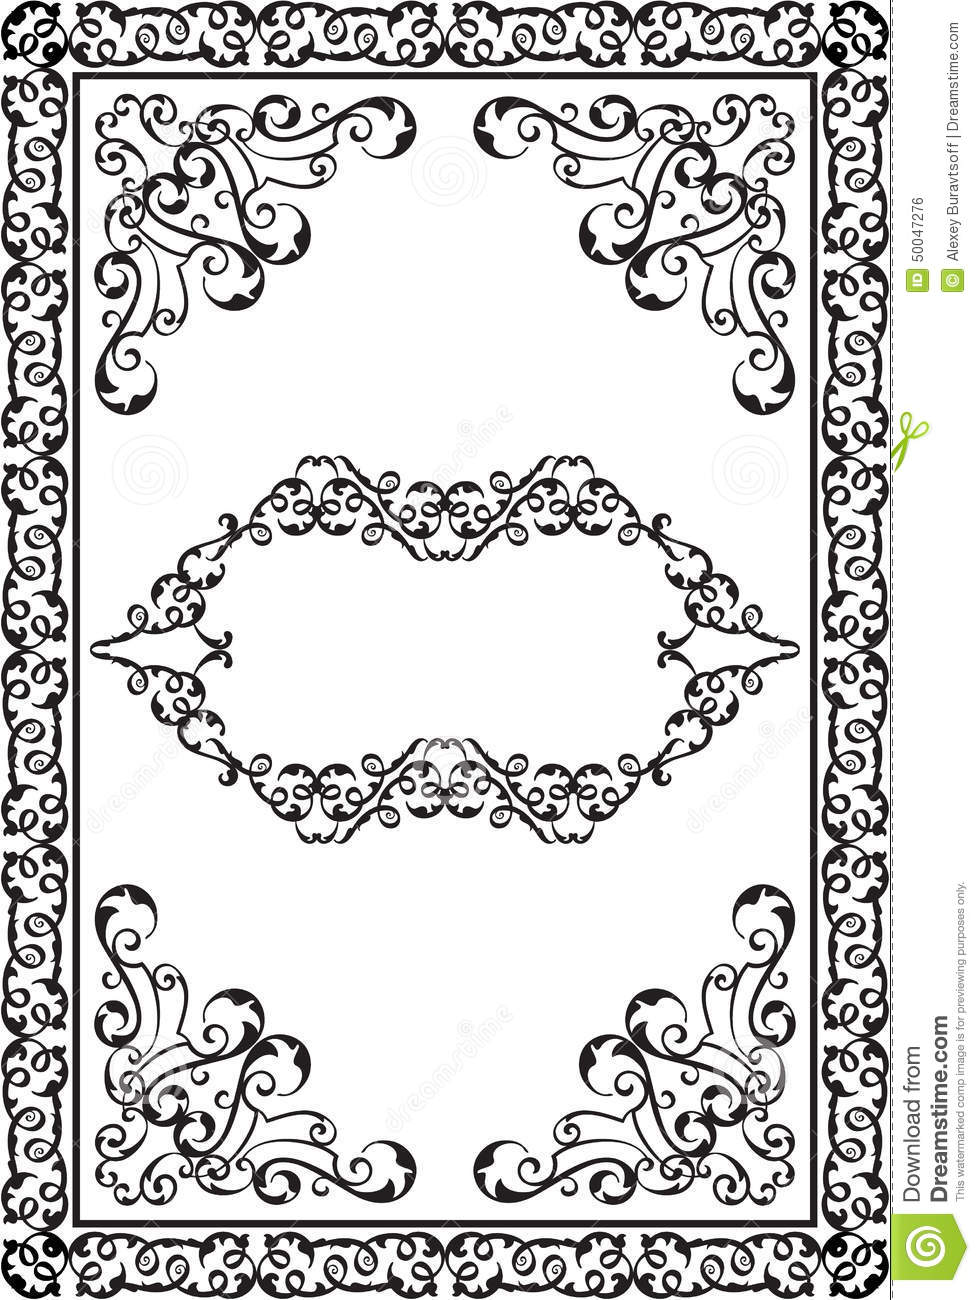 Victorian Design Elements victorian design elements and page decoration stock illustration